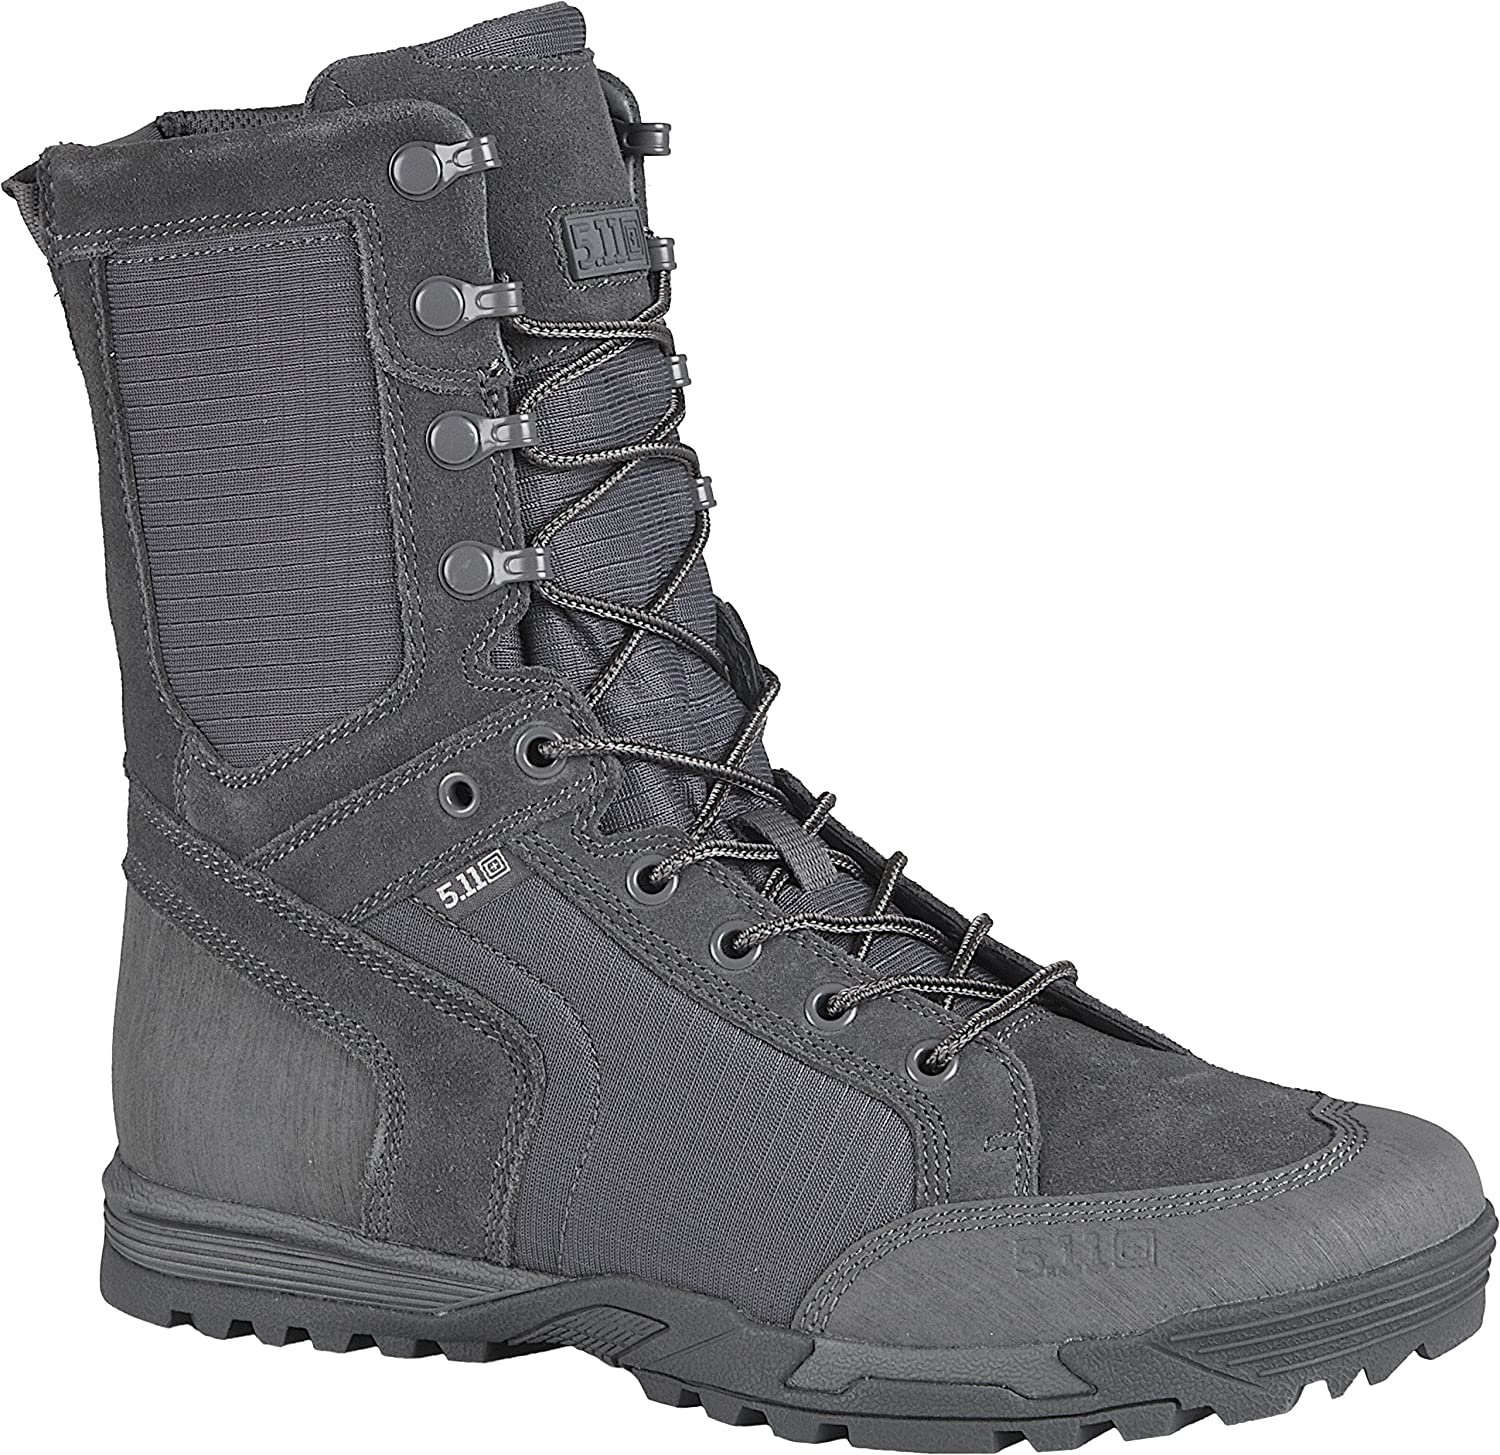 5.11 Men's Recon Tactical Boot